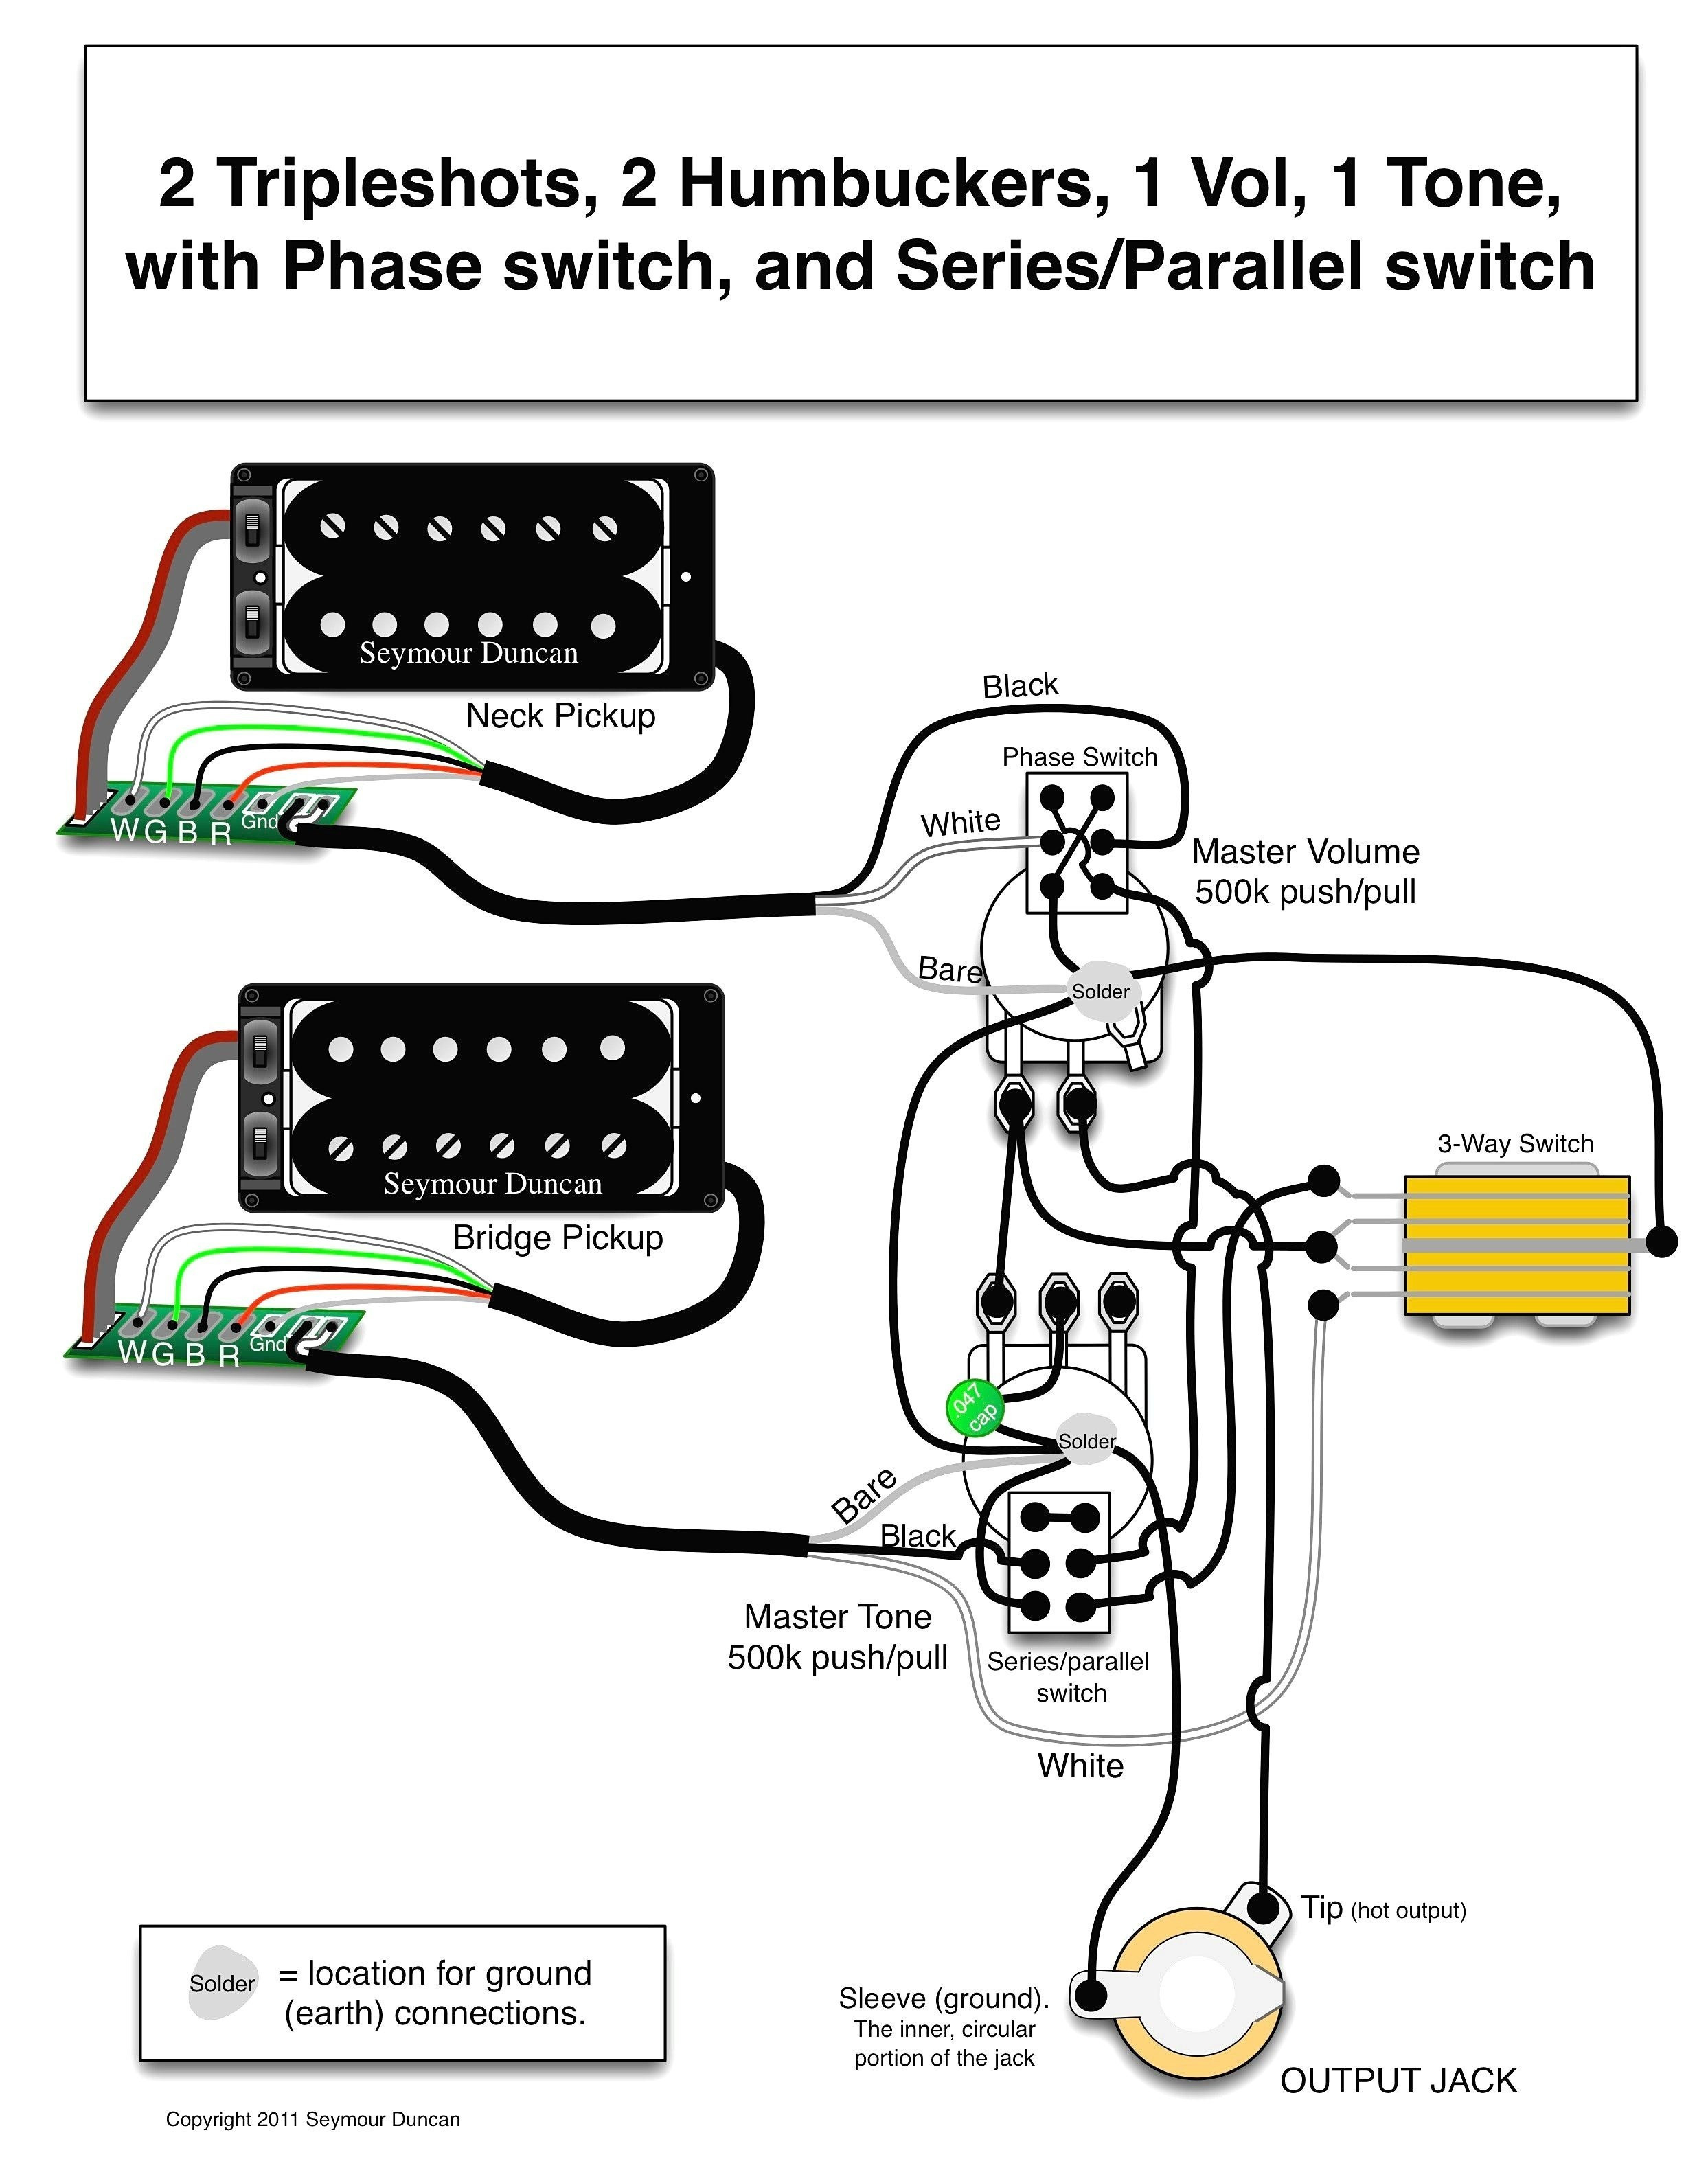 Epiphone les paul special wiring diagram sample wiring diagram sample wiring diagram sheets detail name epiphone les paul special wiring diagram gibson les paul special wiring cheapraybanclubmaster Choice Image